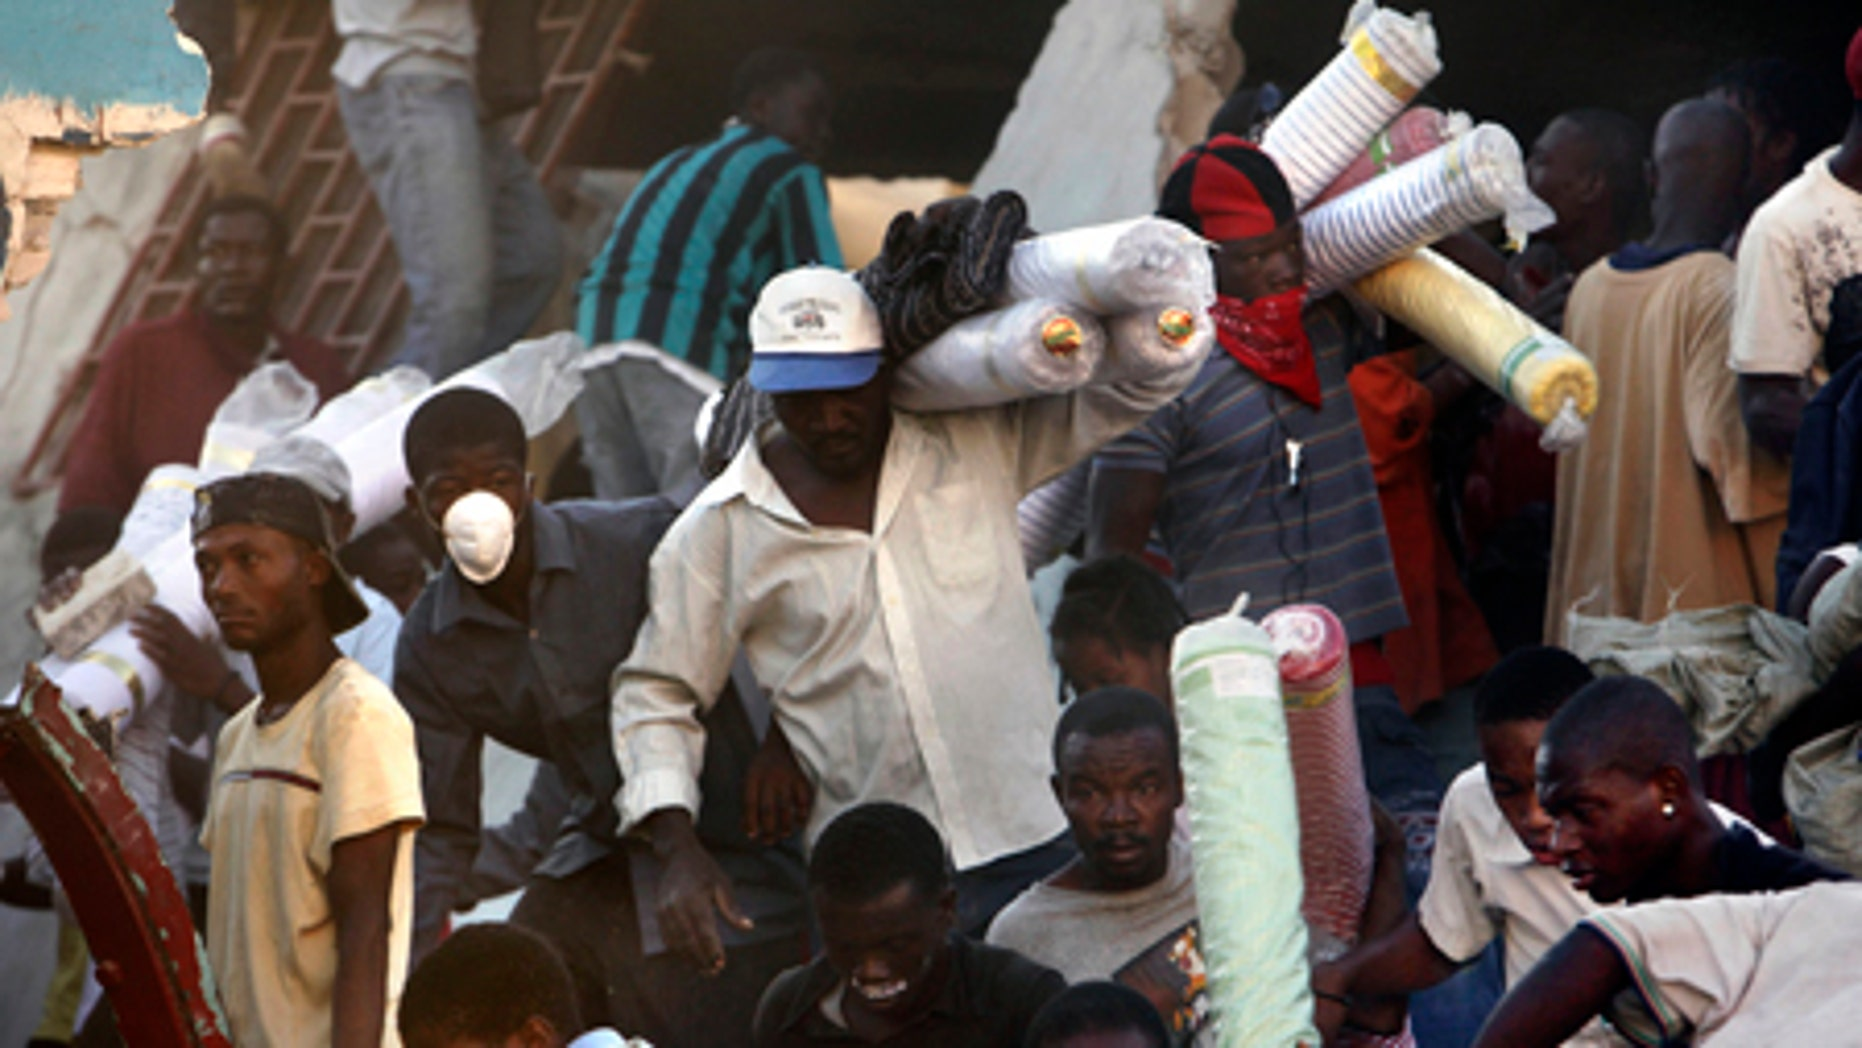 Jan. 16: People take goods from a collapsed store in Port-au-Prince.